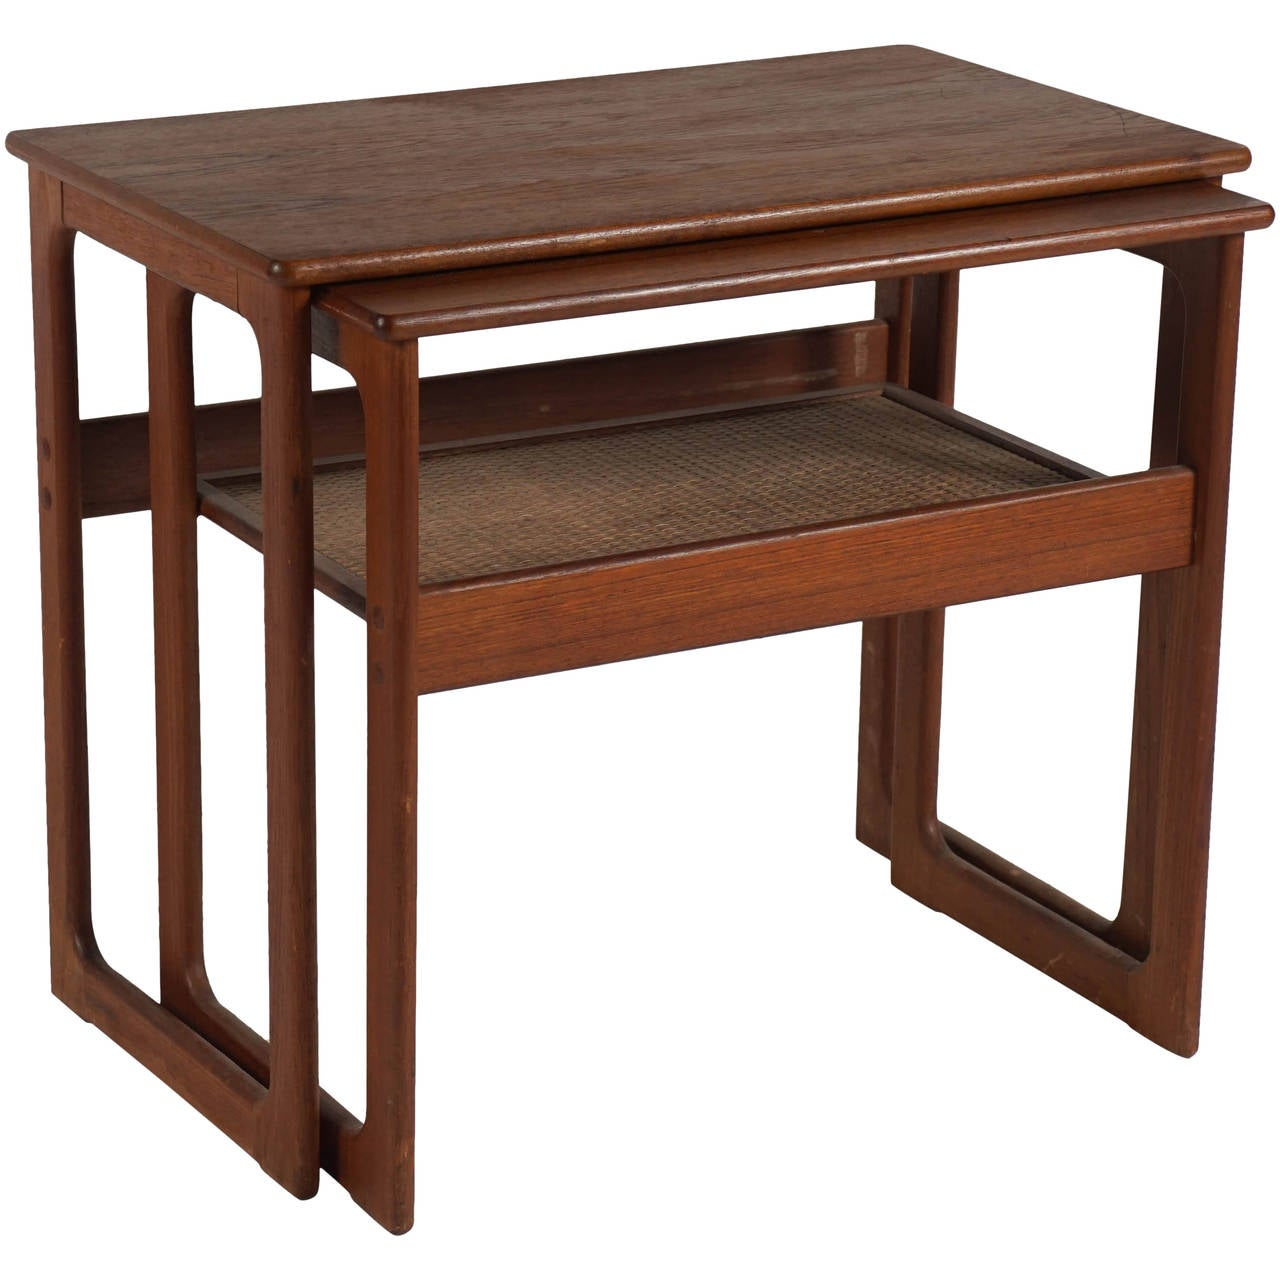 Teak Nesting Tables ~ Set of teak nesting tables by silkeborg at stdibs